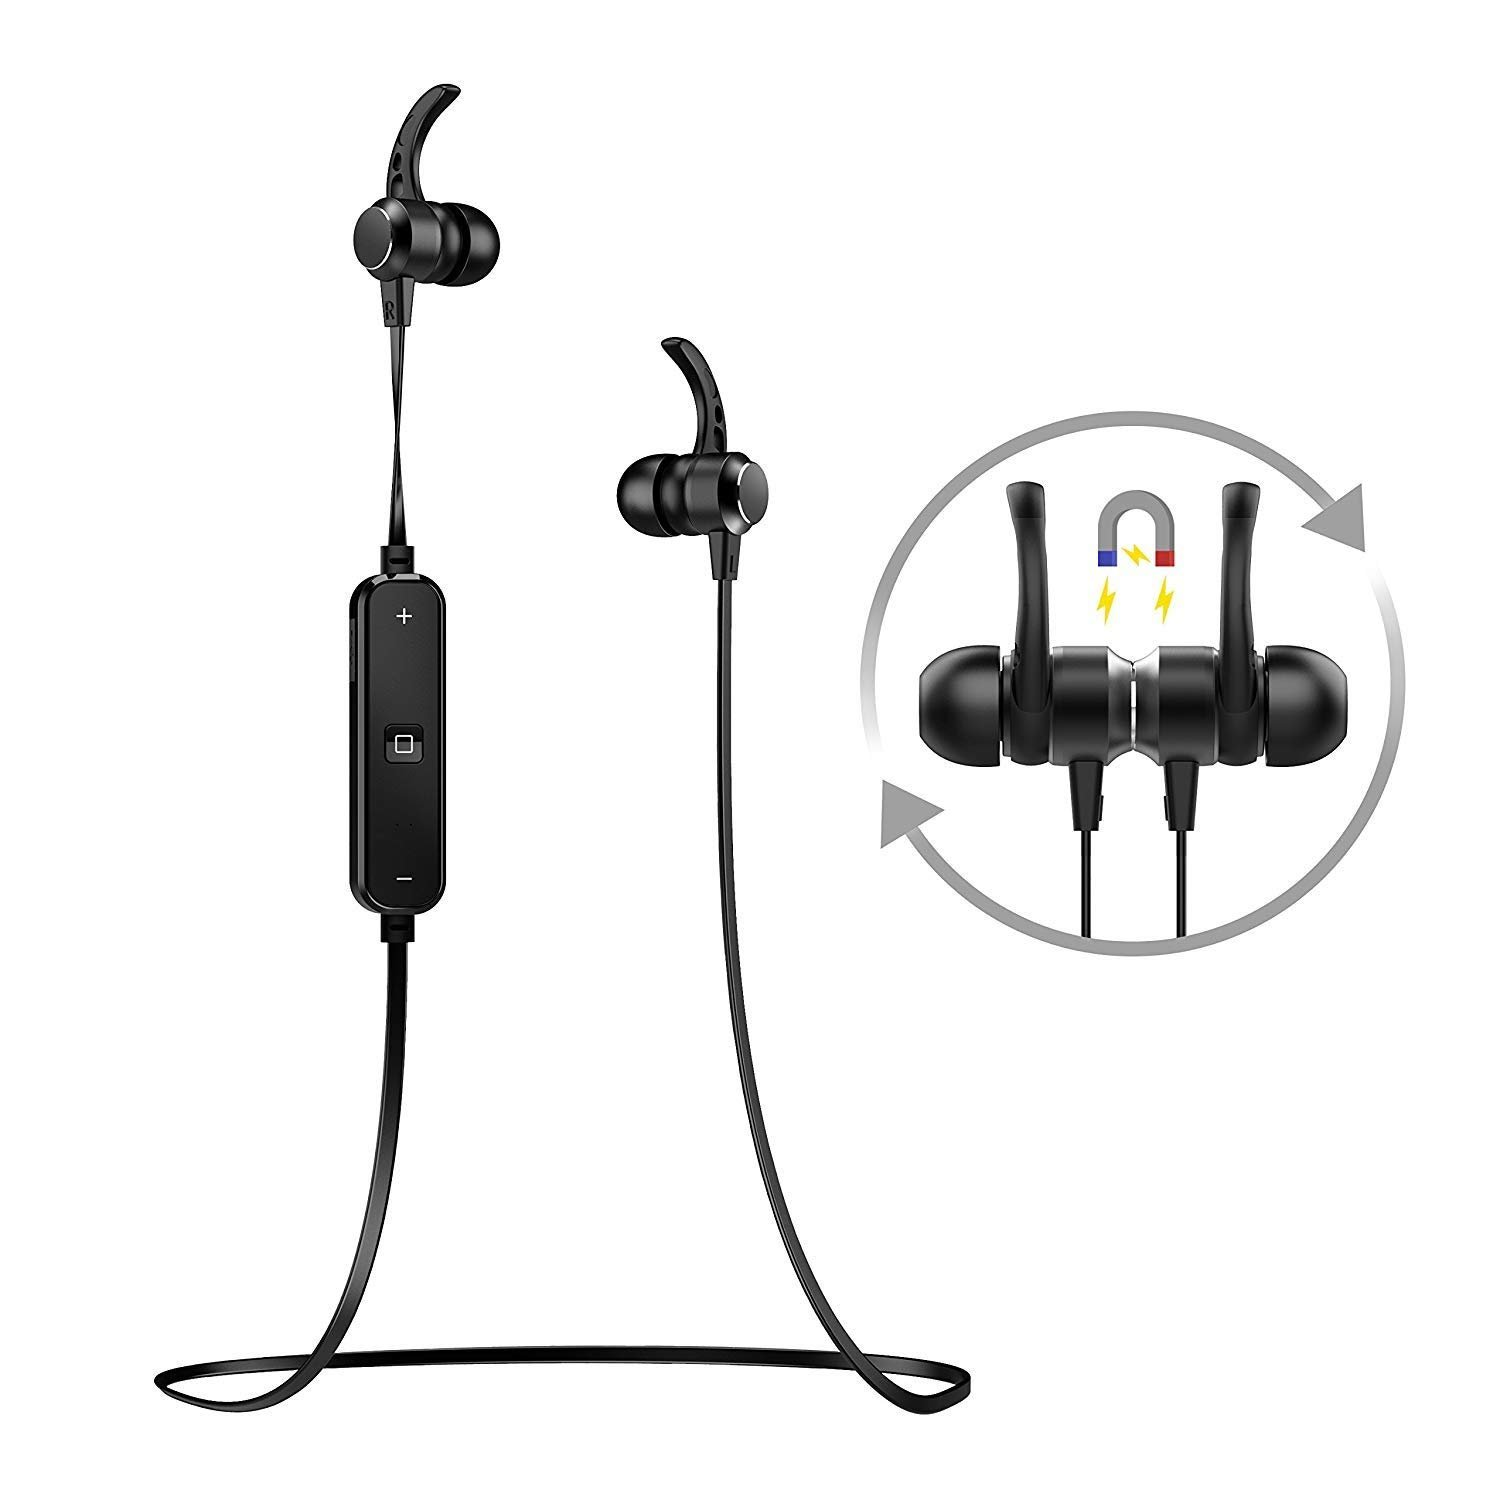 Bluetooth Earbuds, Wireless Headphones Headsets Stereo In-Ear .Earpieces Earphones With Noise. Canceling Microphone